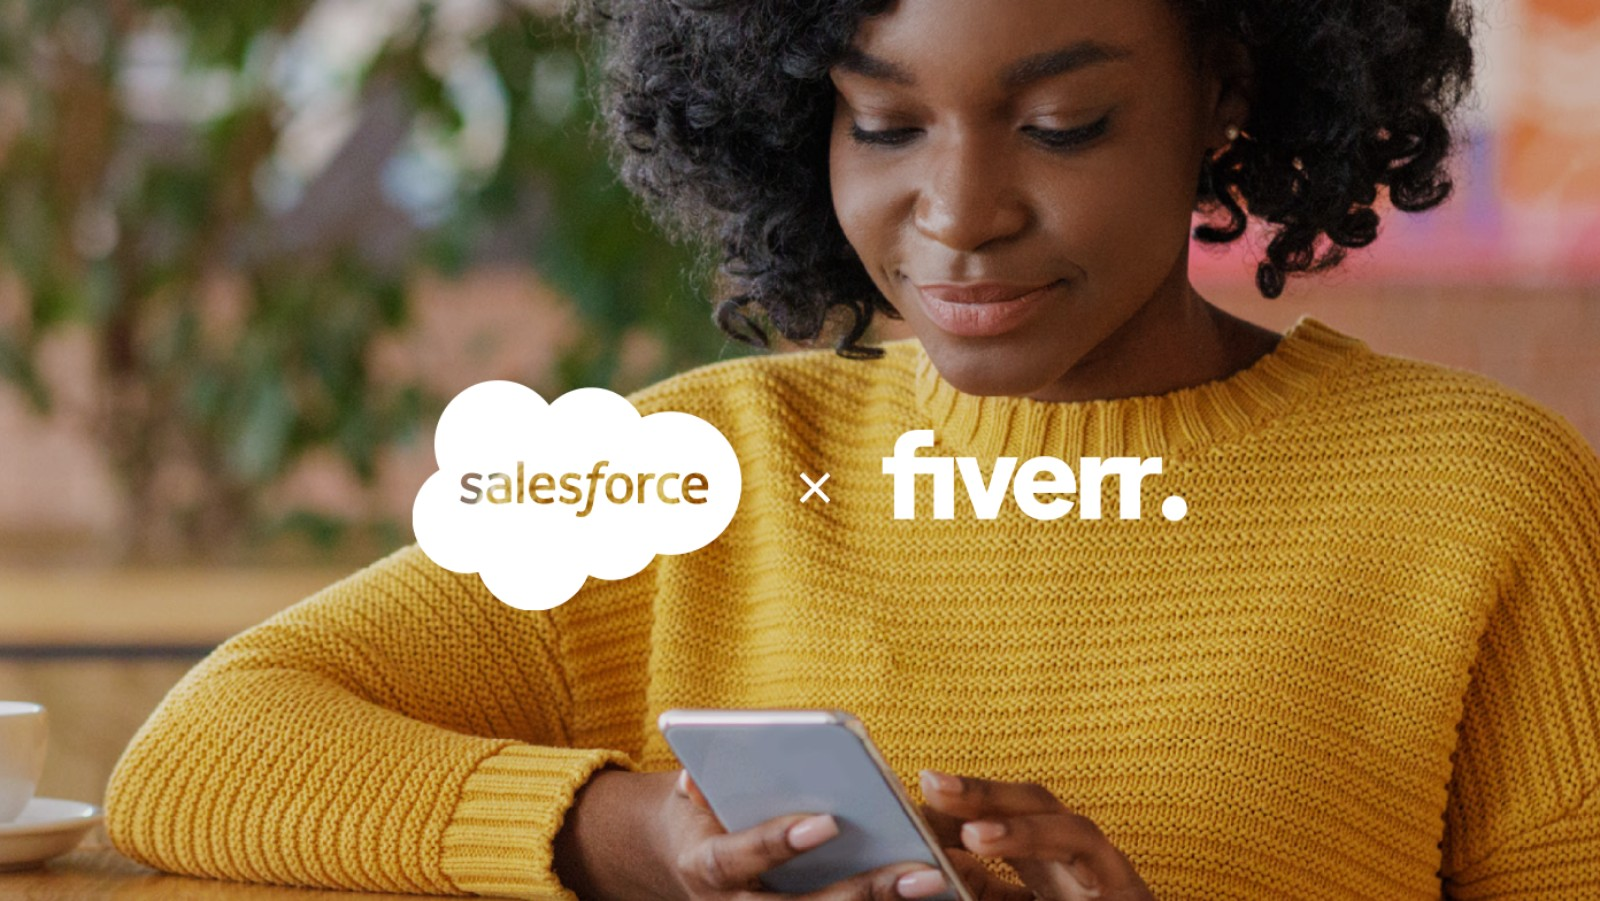 Fiverr And Salesforce To Empower People With Disabilities